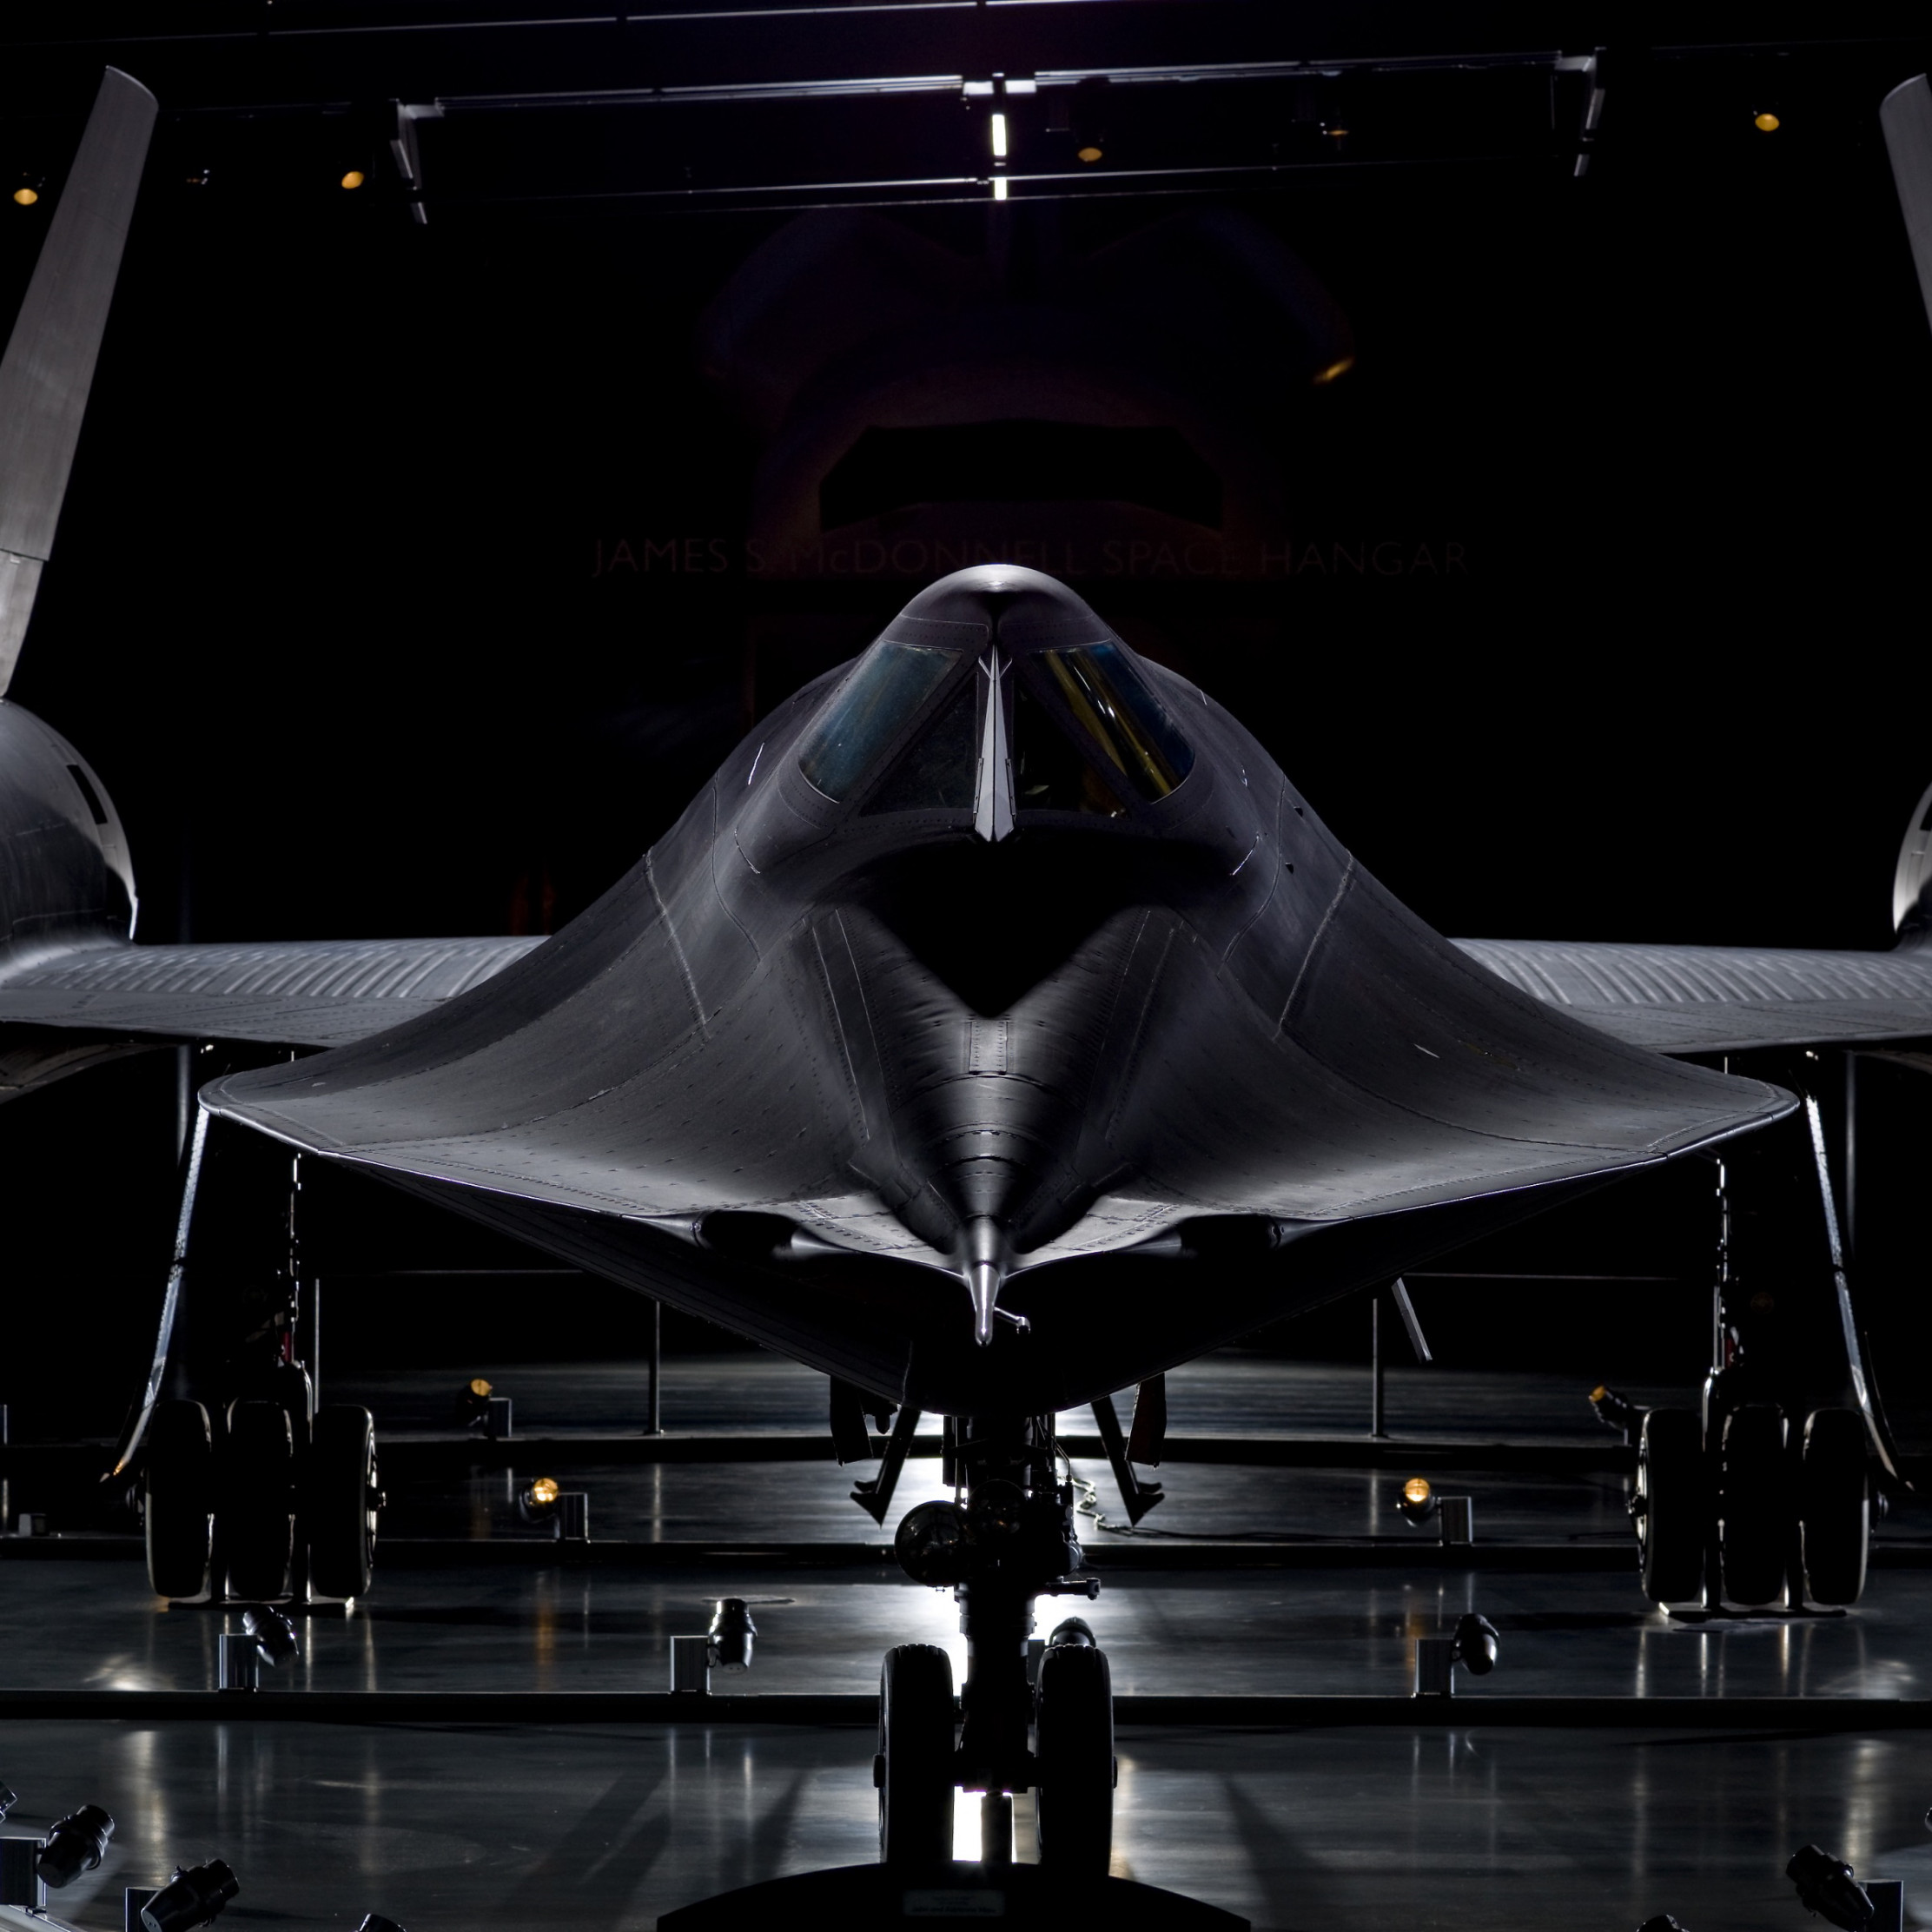 Lockheed SR 71 Blackbird wallpaper 2224x2224